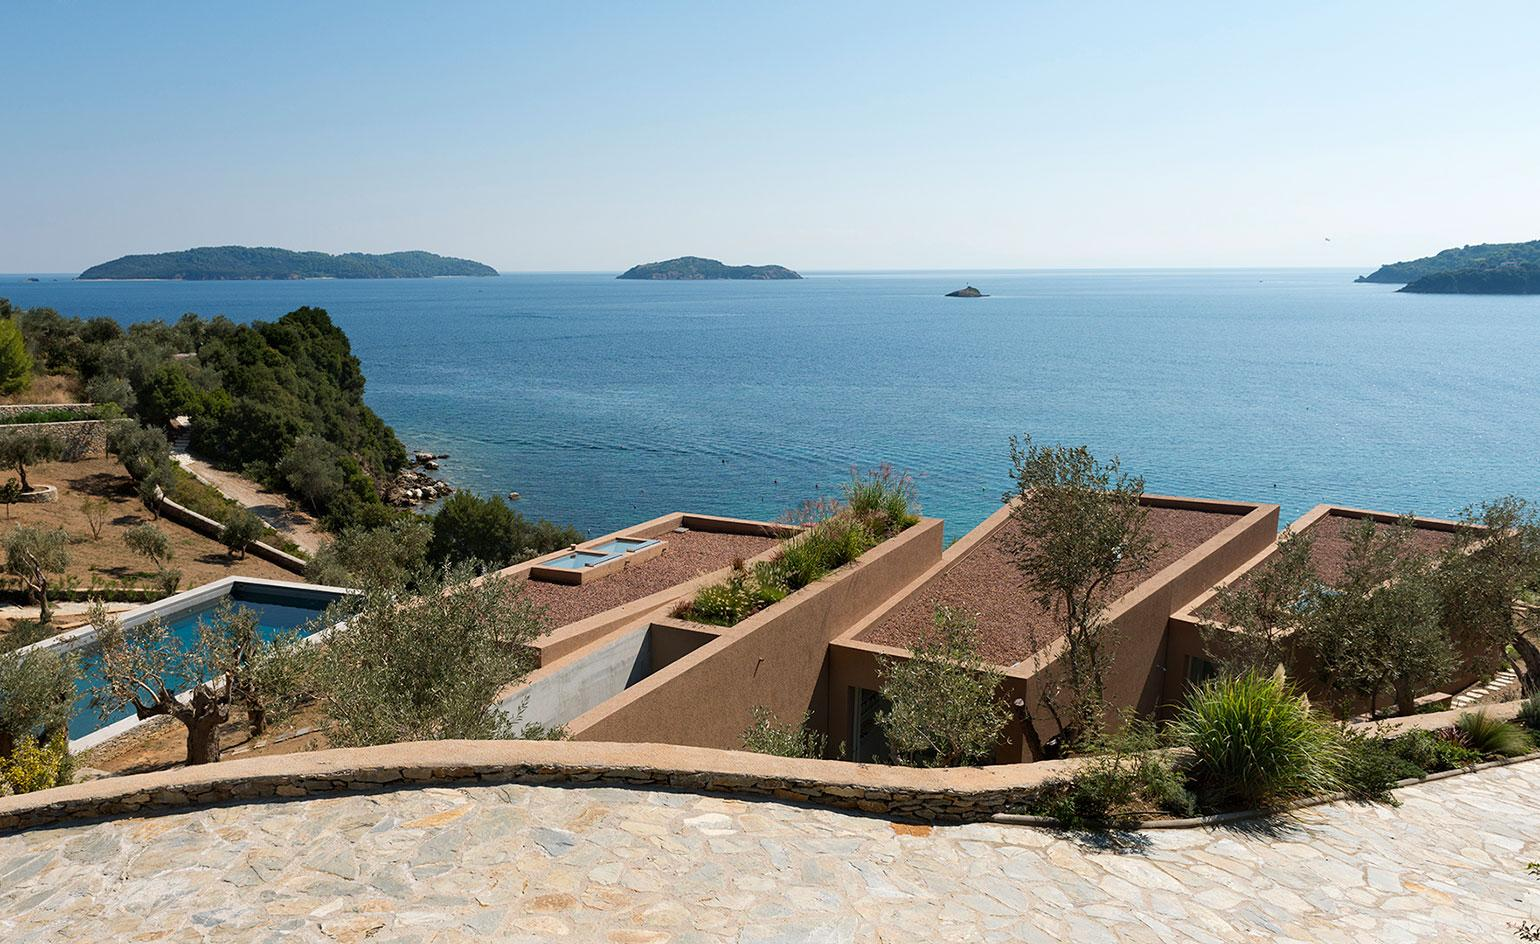 Mediterranean modern: the first house from architect Lydia Xynogala